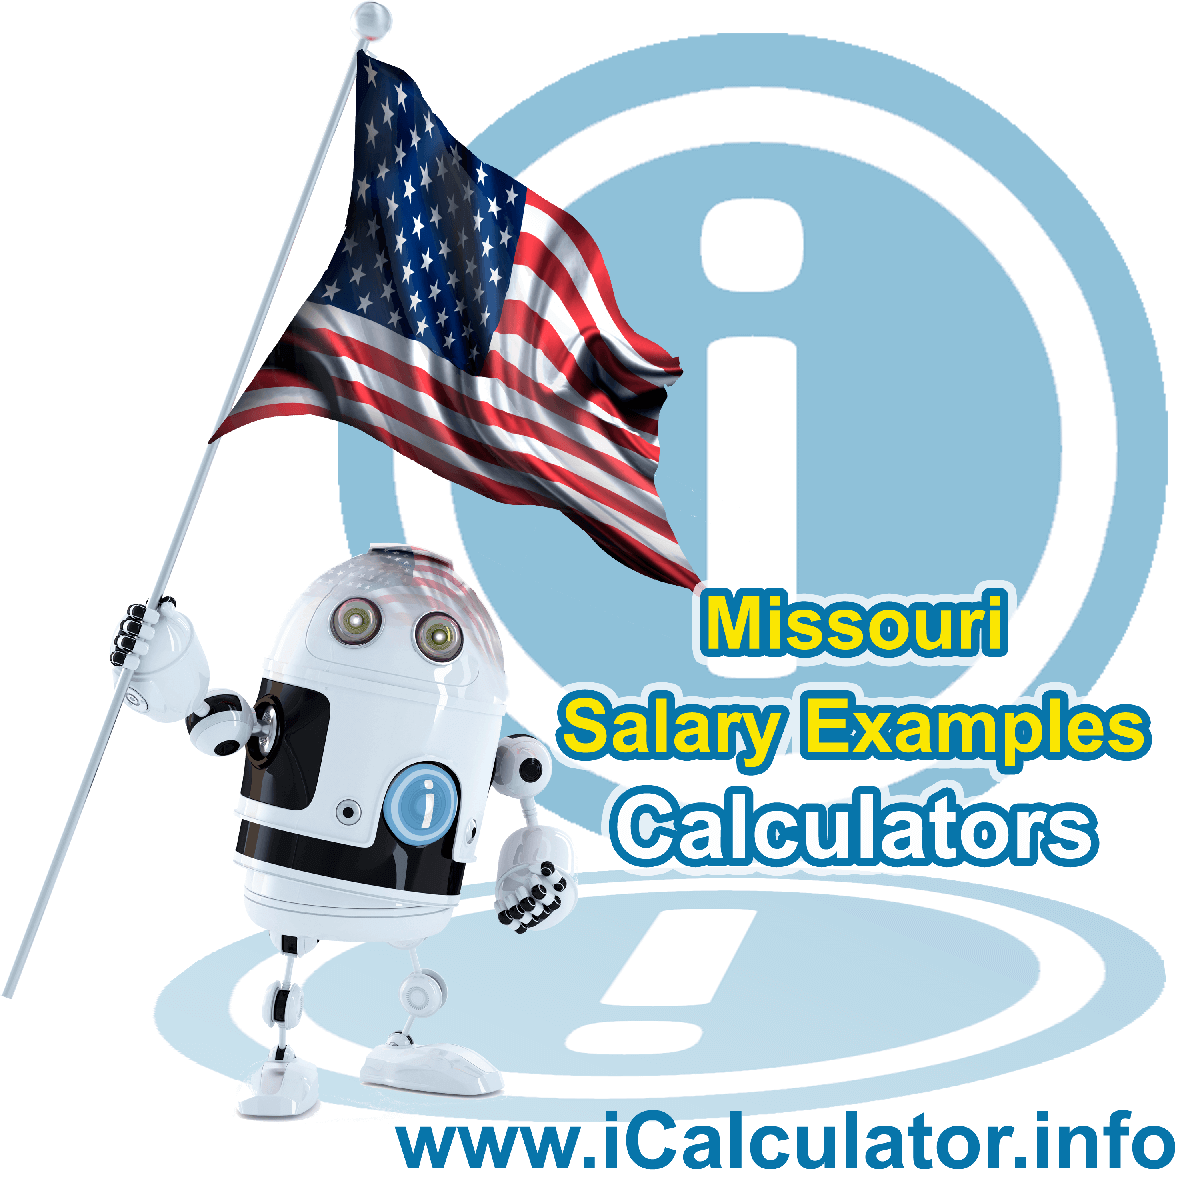 Missouri Salary Example for $170,000.00 in 2020 | iCalculator | $170,000.00 salary example for employee and employer paying Missouri State tincome taxes. Detailed salary after tax calculation including Missouri State Tax, Federal State Tax, Medicare Deductions, Social Security, Capital Gains and other income tax and salary deductions complete with supporting Missouri state tax tables